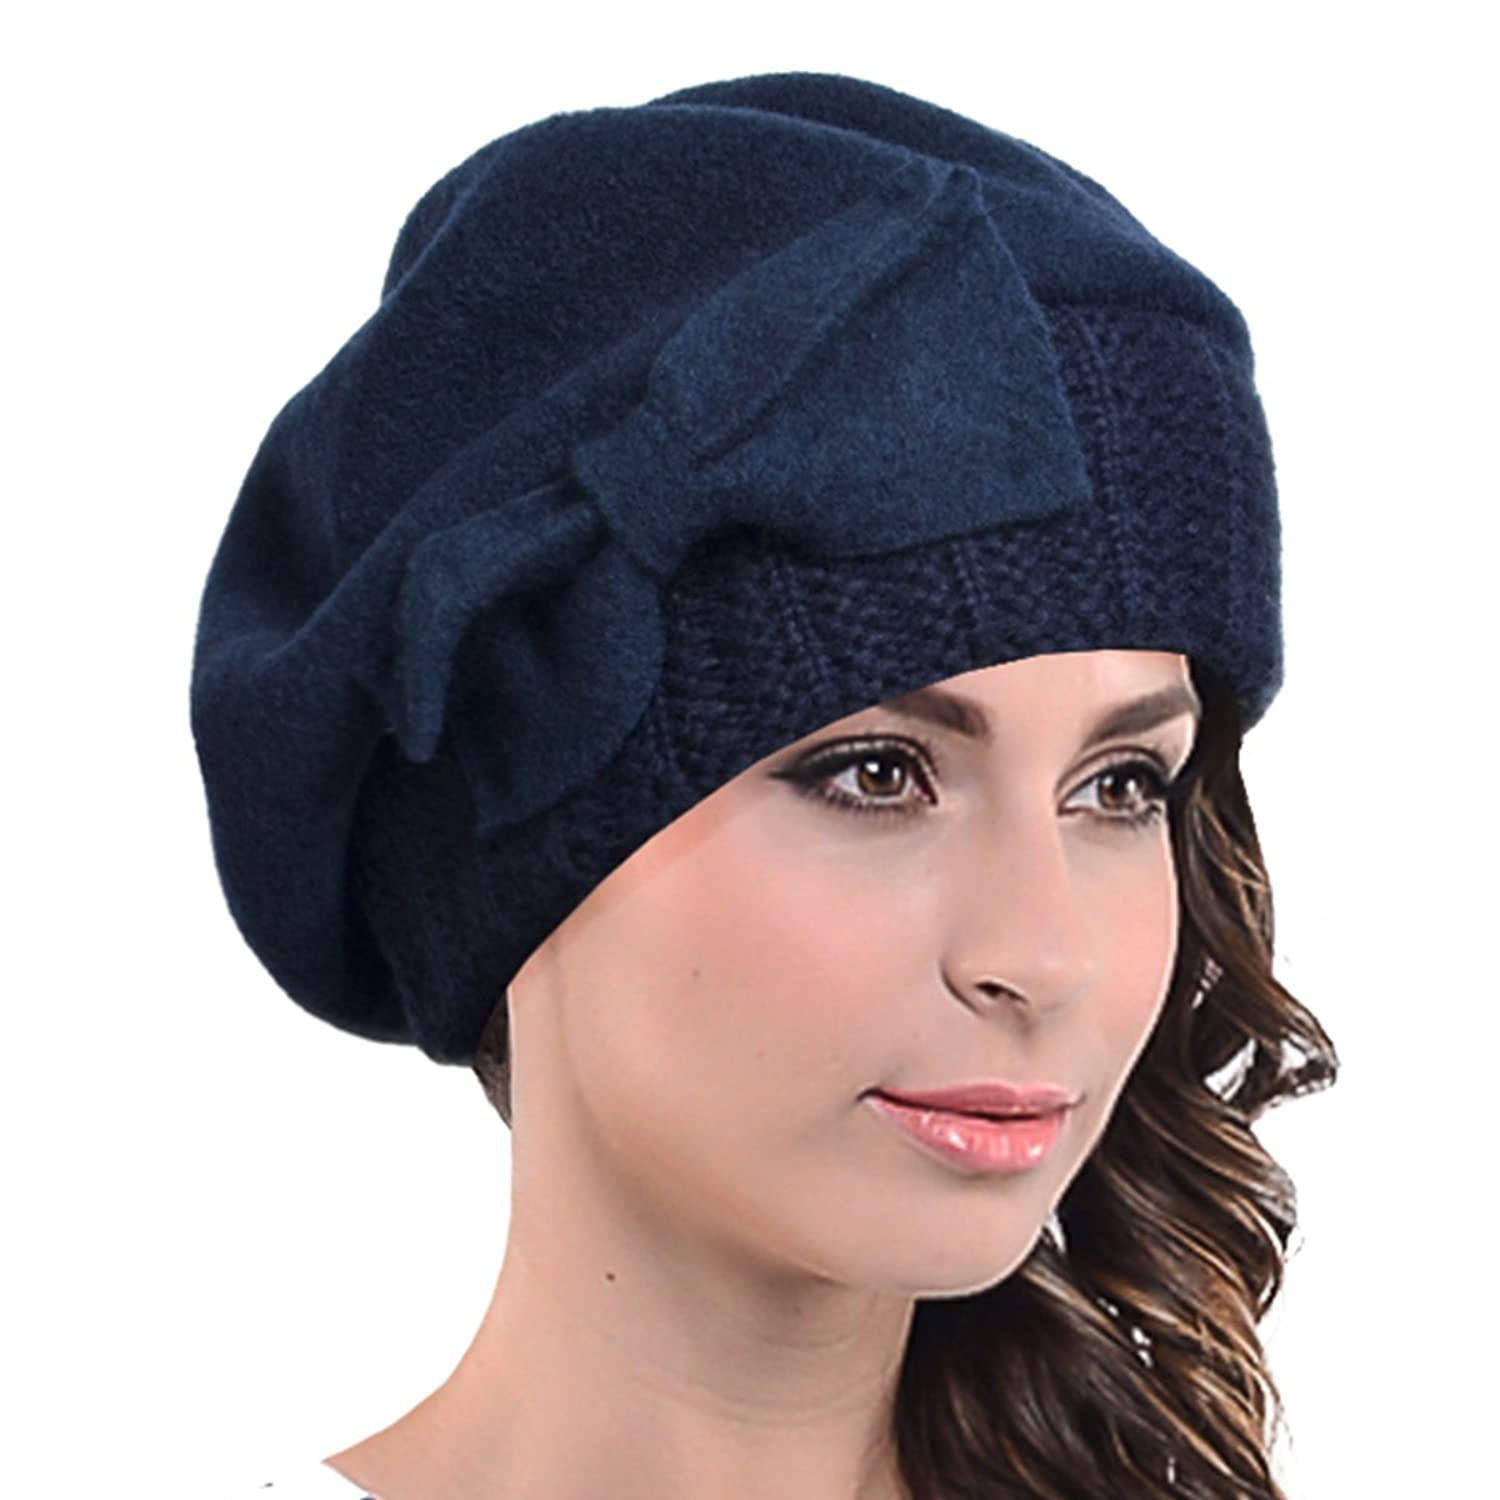 Tea Party Hats – Victorian to 1950s Lady French Beret Wool Beret Chic Beanie Winter Hat Jf-br034 $21.99 AT vintagedancer.com